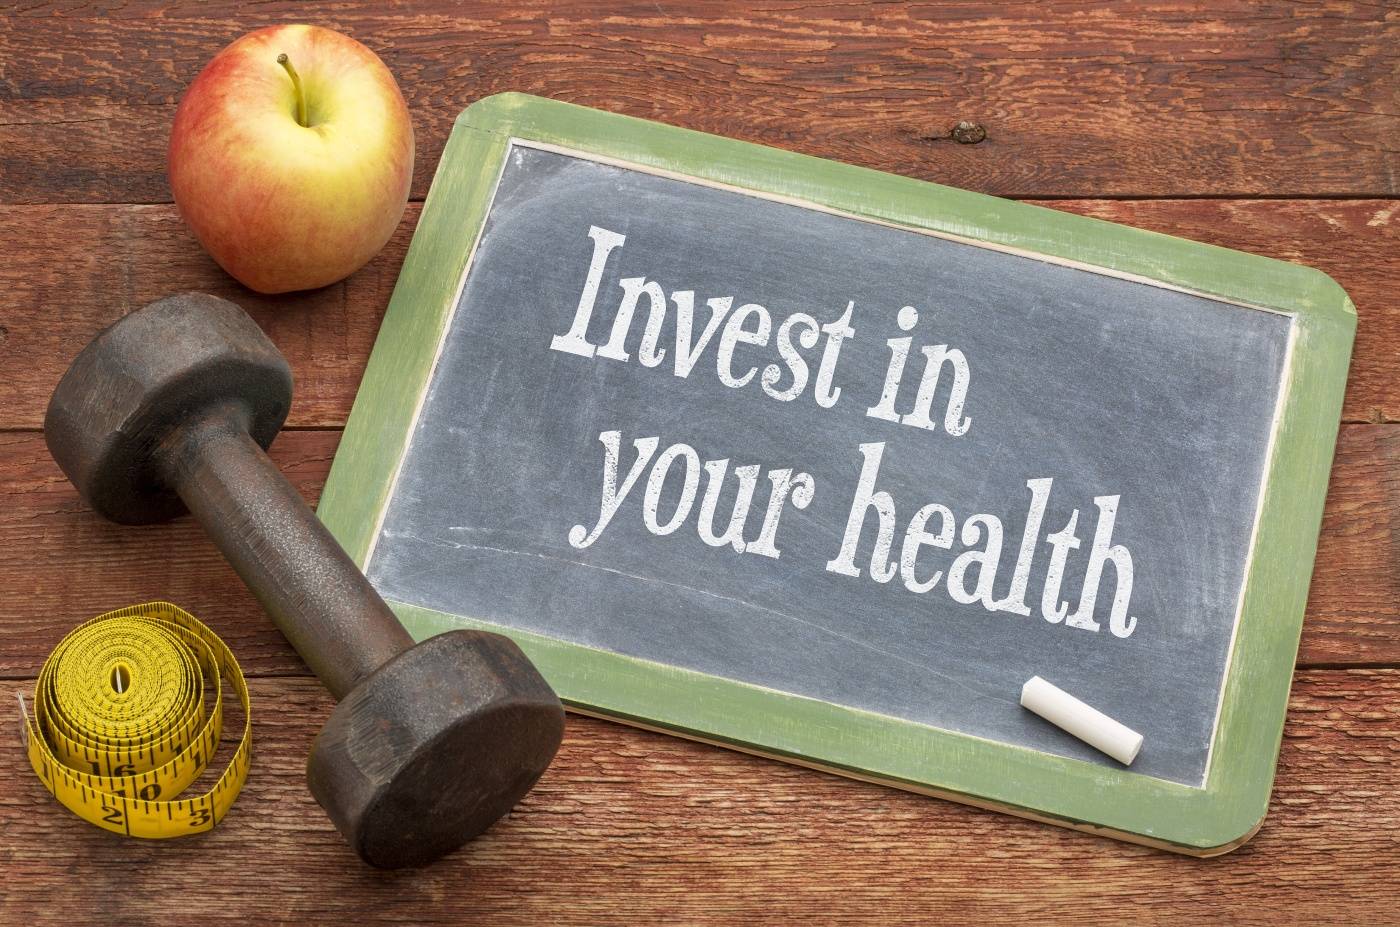 Invest In your health by Anatoly